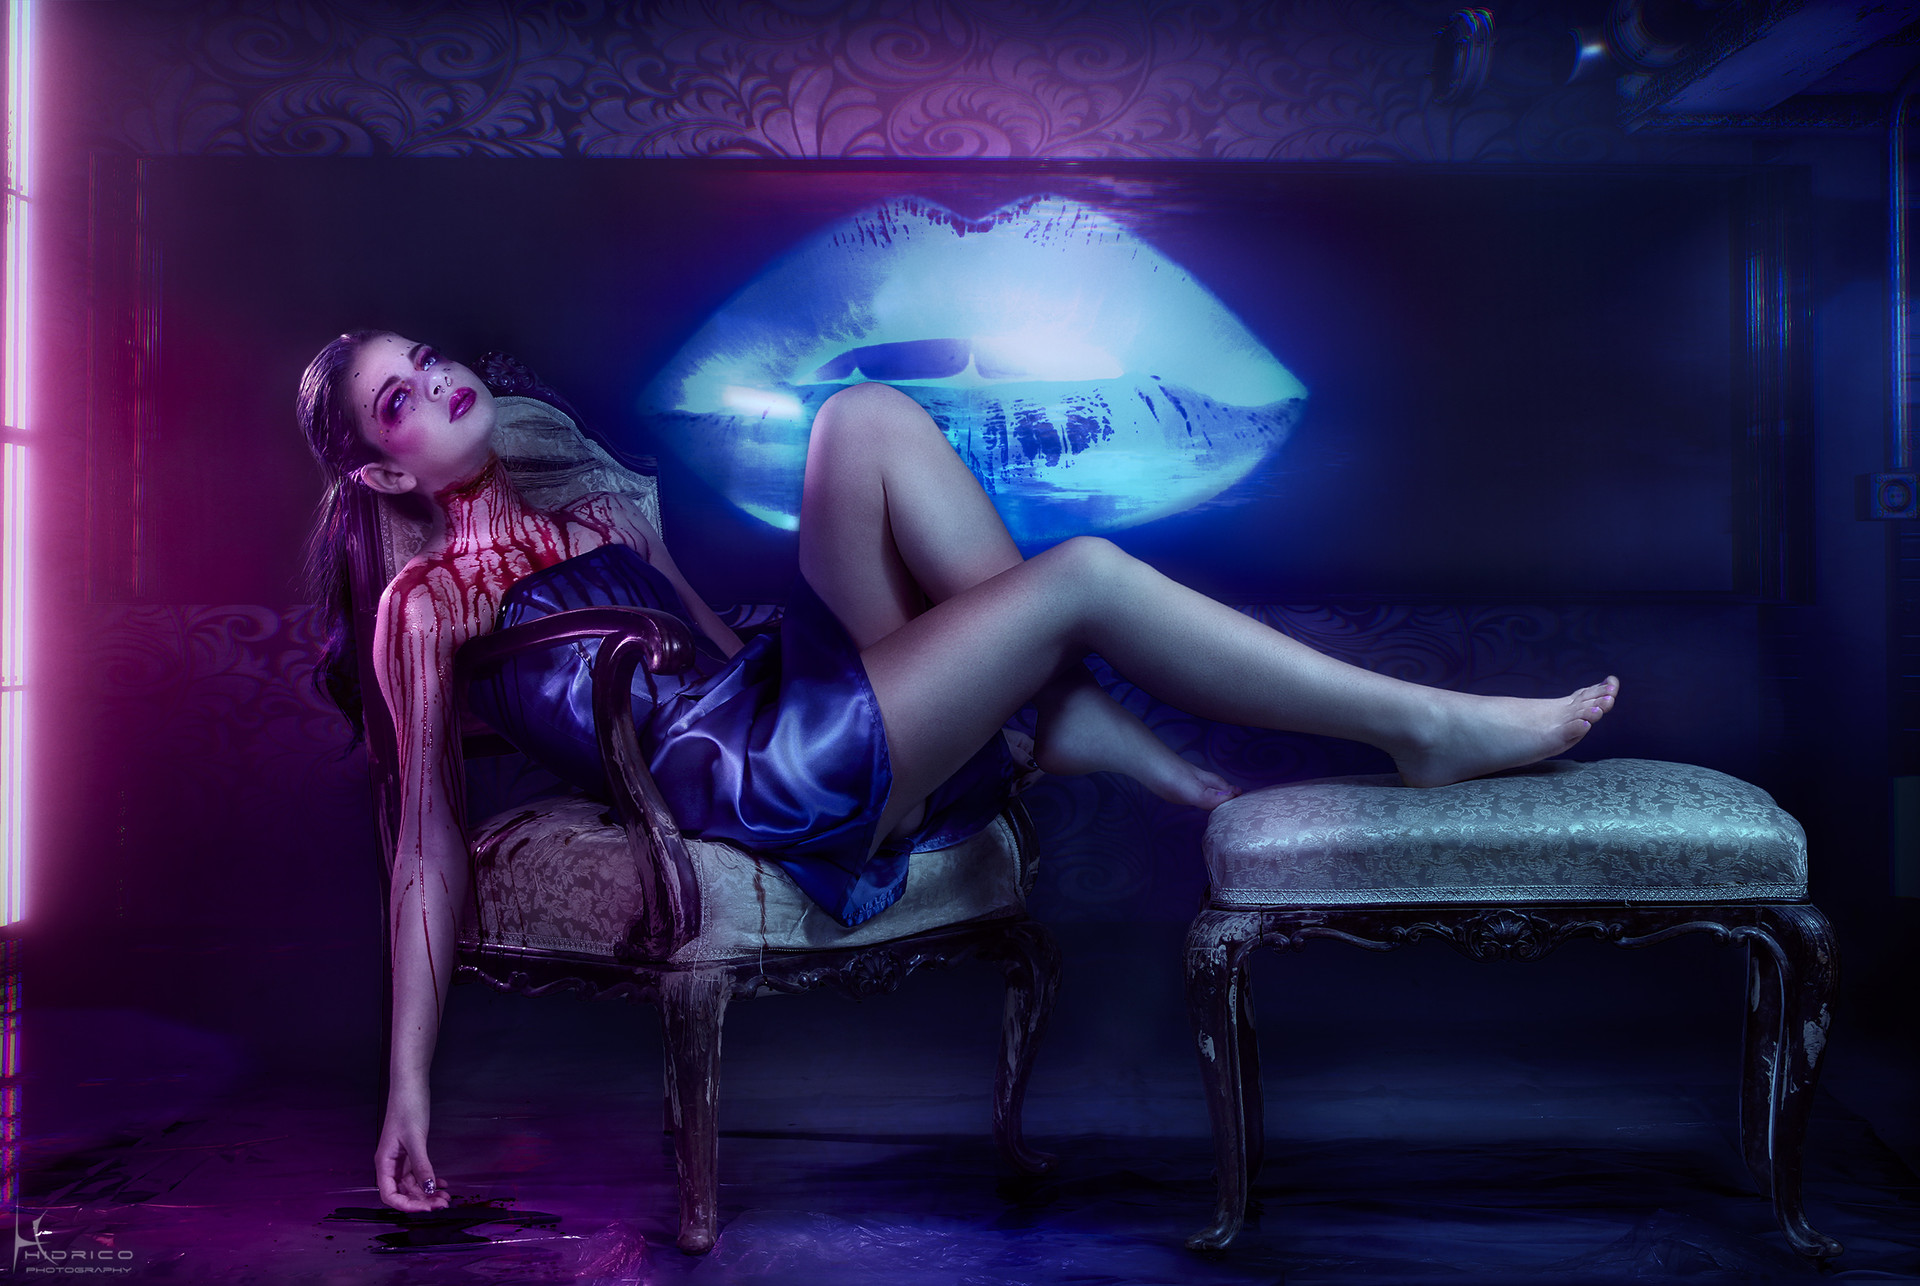 Hidrico rubens 3 beauty is viscious neon demon paula 2 drop